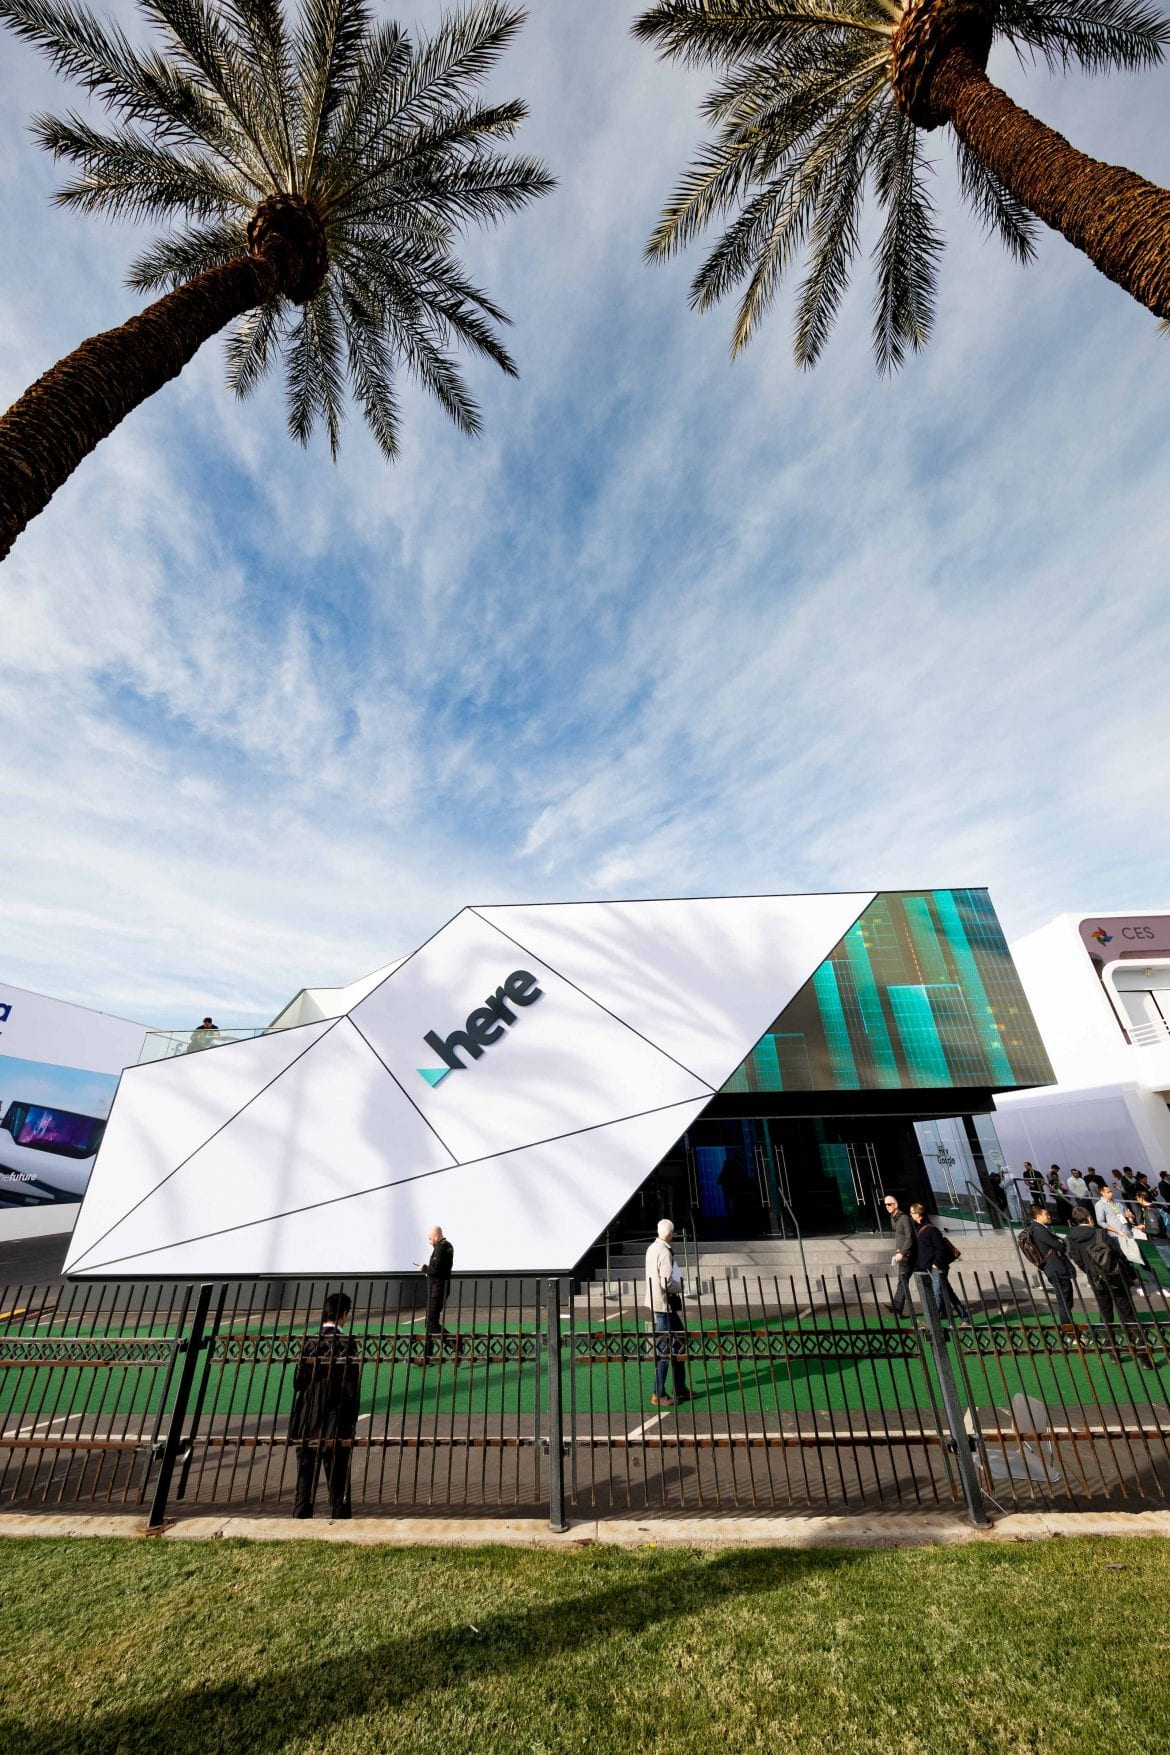 Case study: Jack Morton and HERE at CES